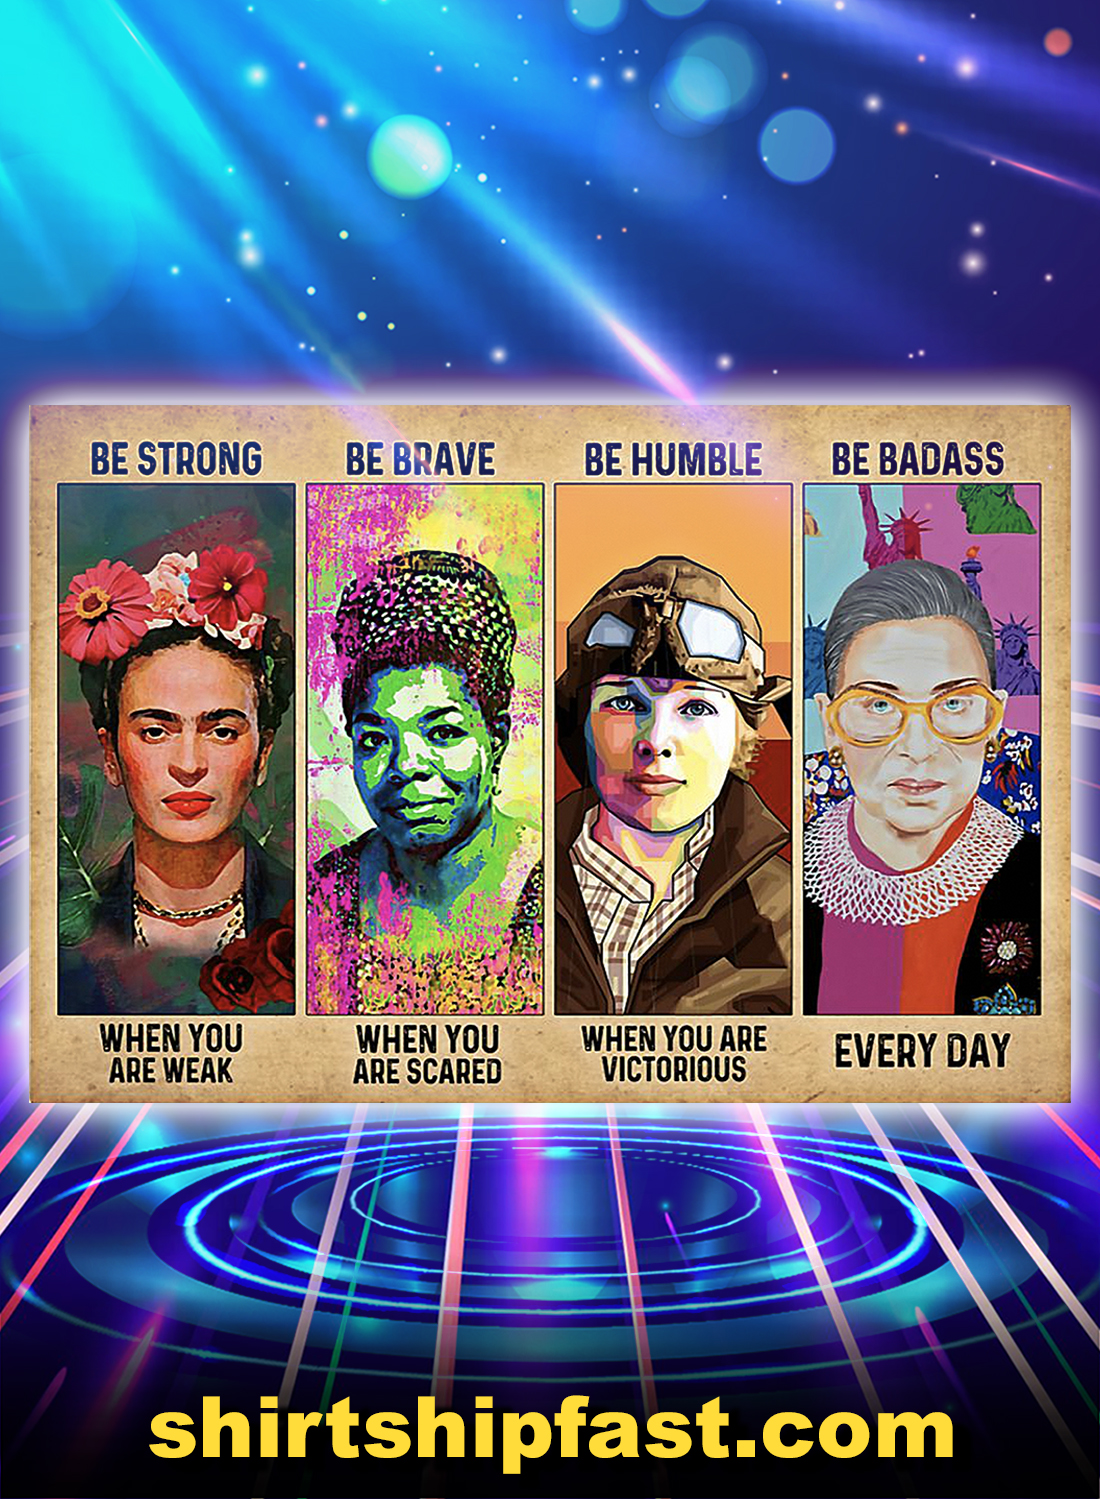 Feminist RBG Frida Kahlo be strong be brave be humble be badass poster - A4